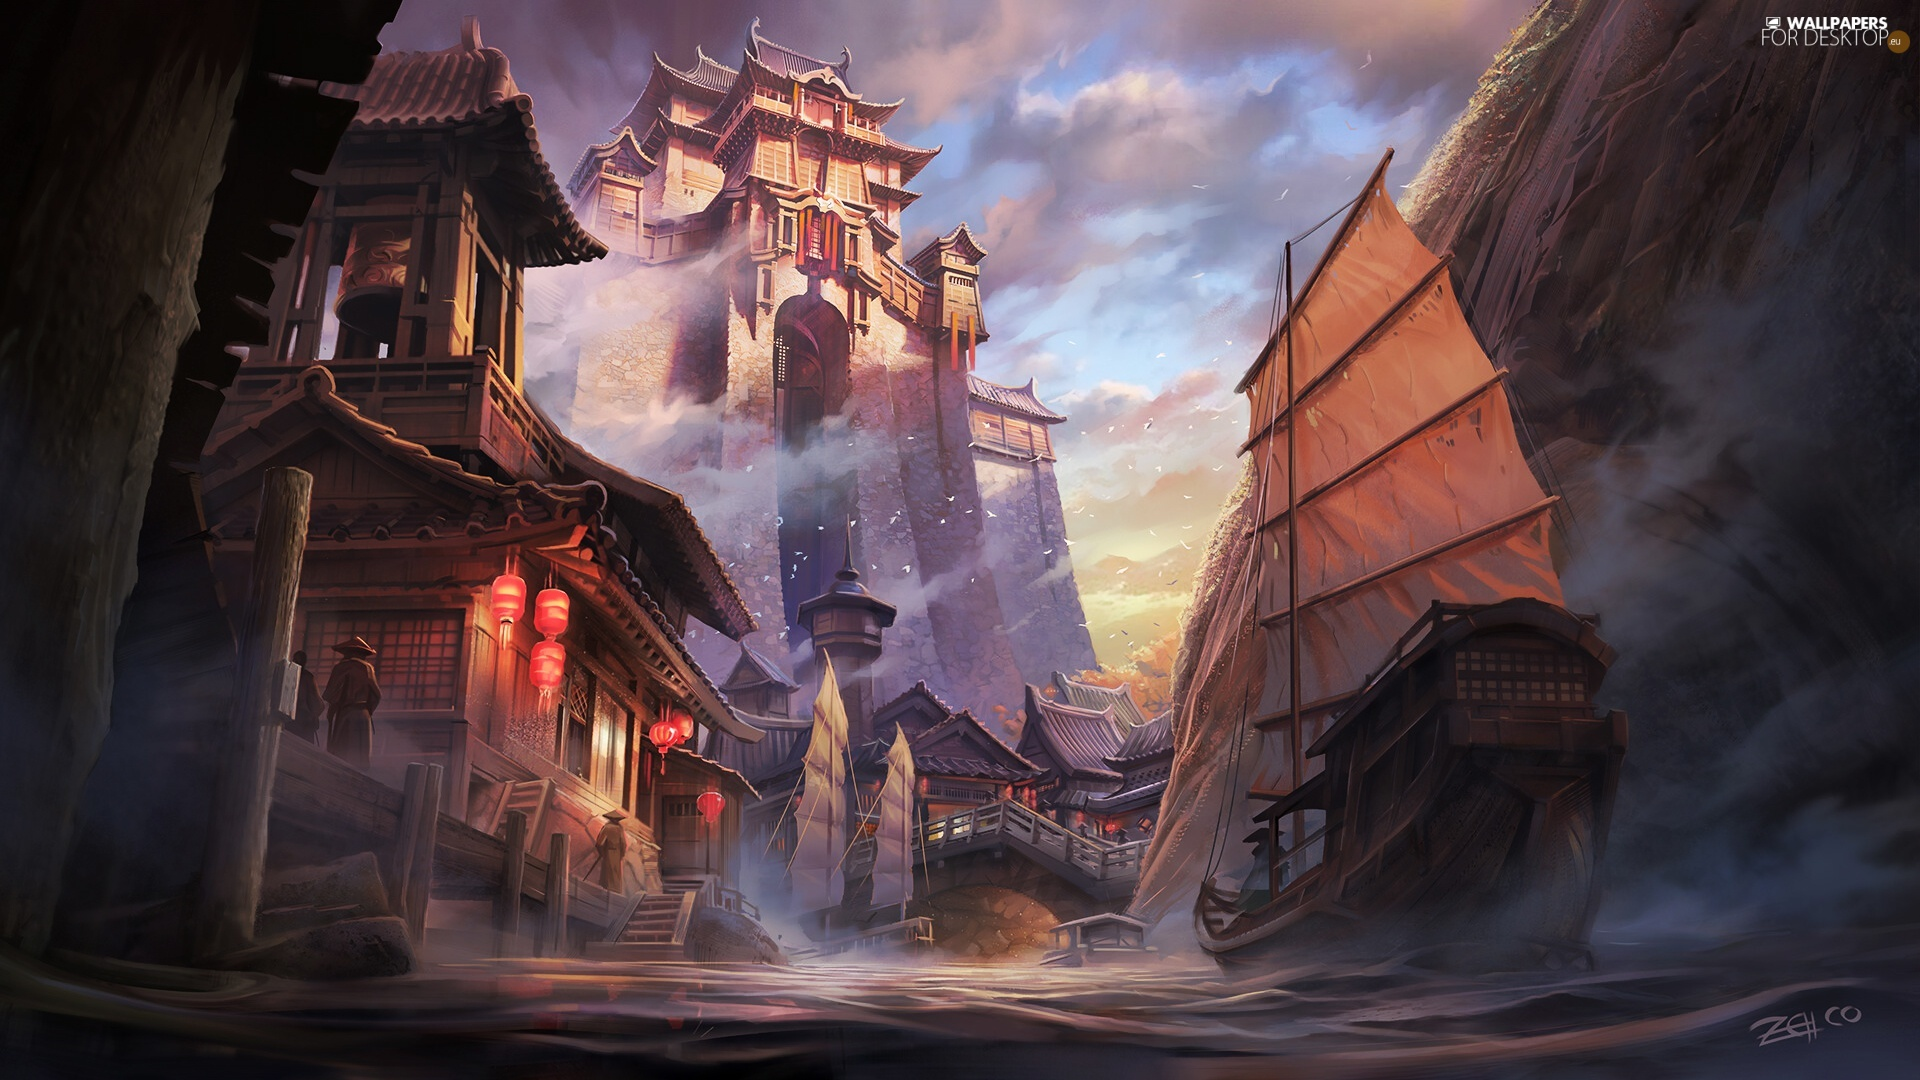 Houses, graphics, Sailboats, fantasy, River, Castle